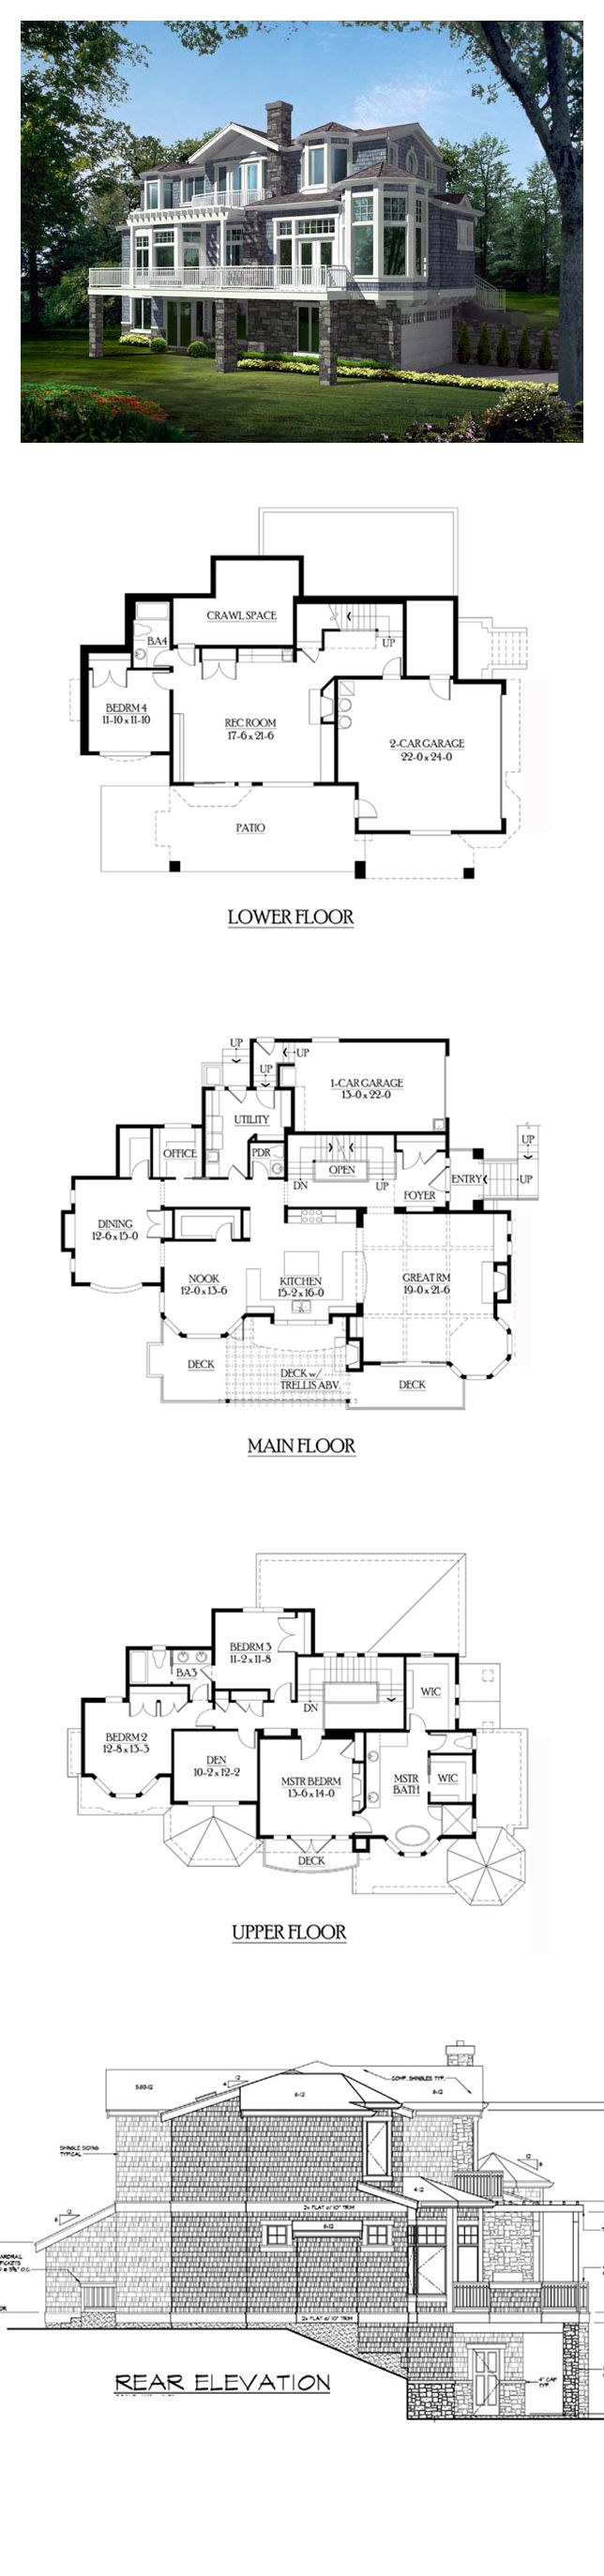 best 25 cool house designs ideas on pinterest cool homes new shingle style cool house plan id chp 39334 total living area 4036